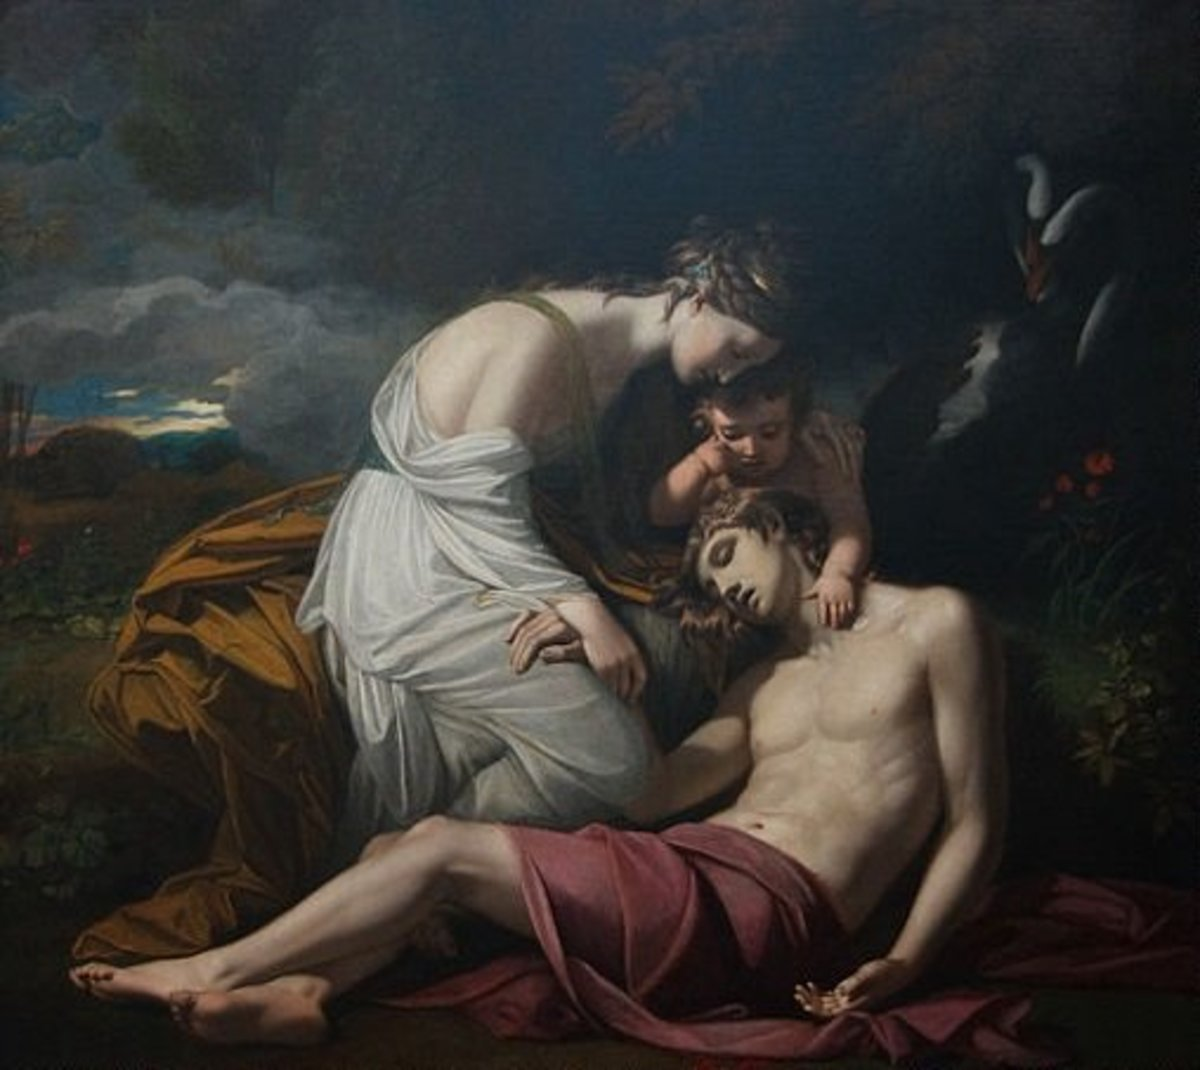 Aphrodite Grieving the Death of Adonis